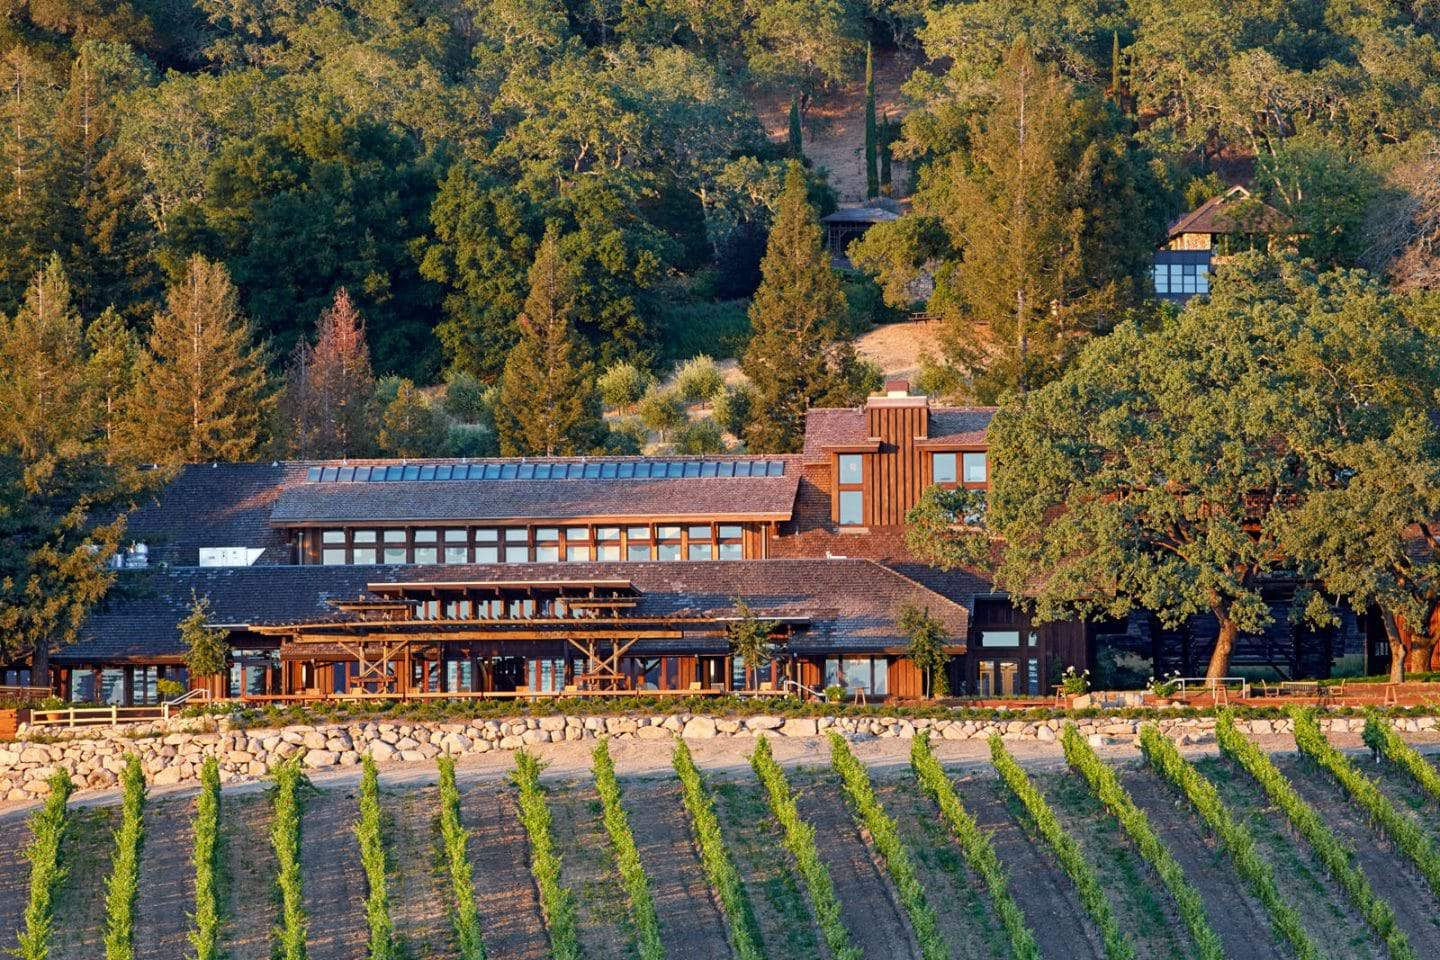 Joseph Phelps winery exterior